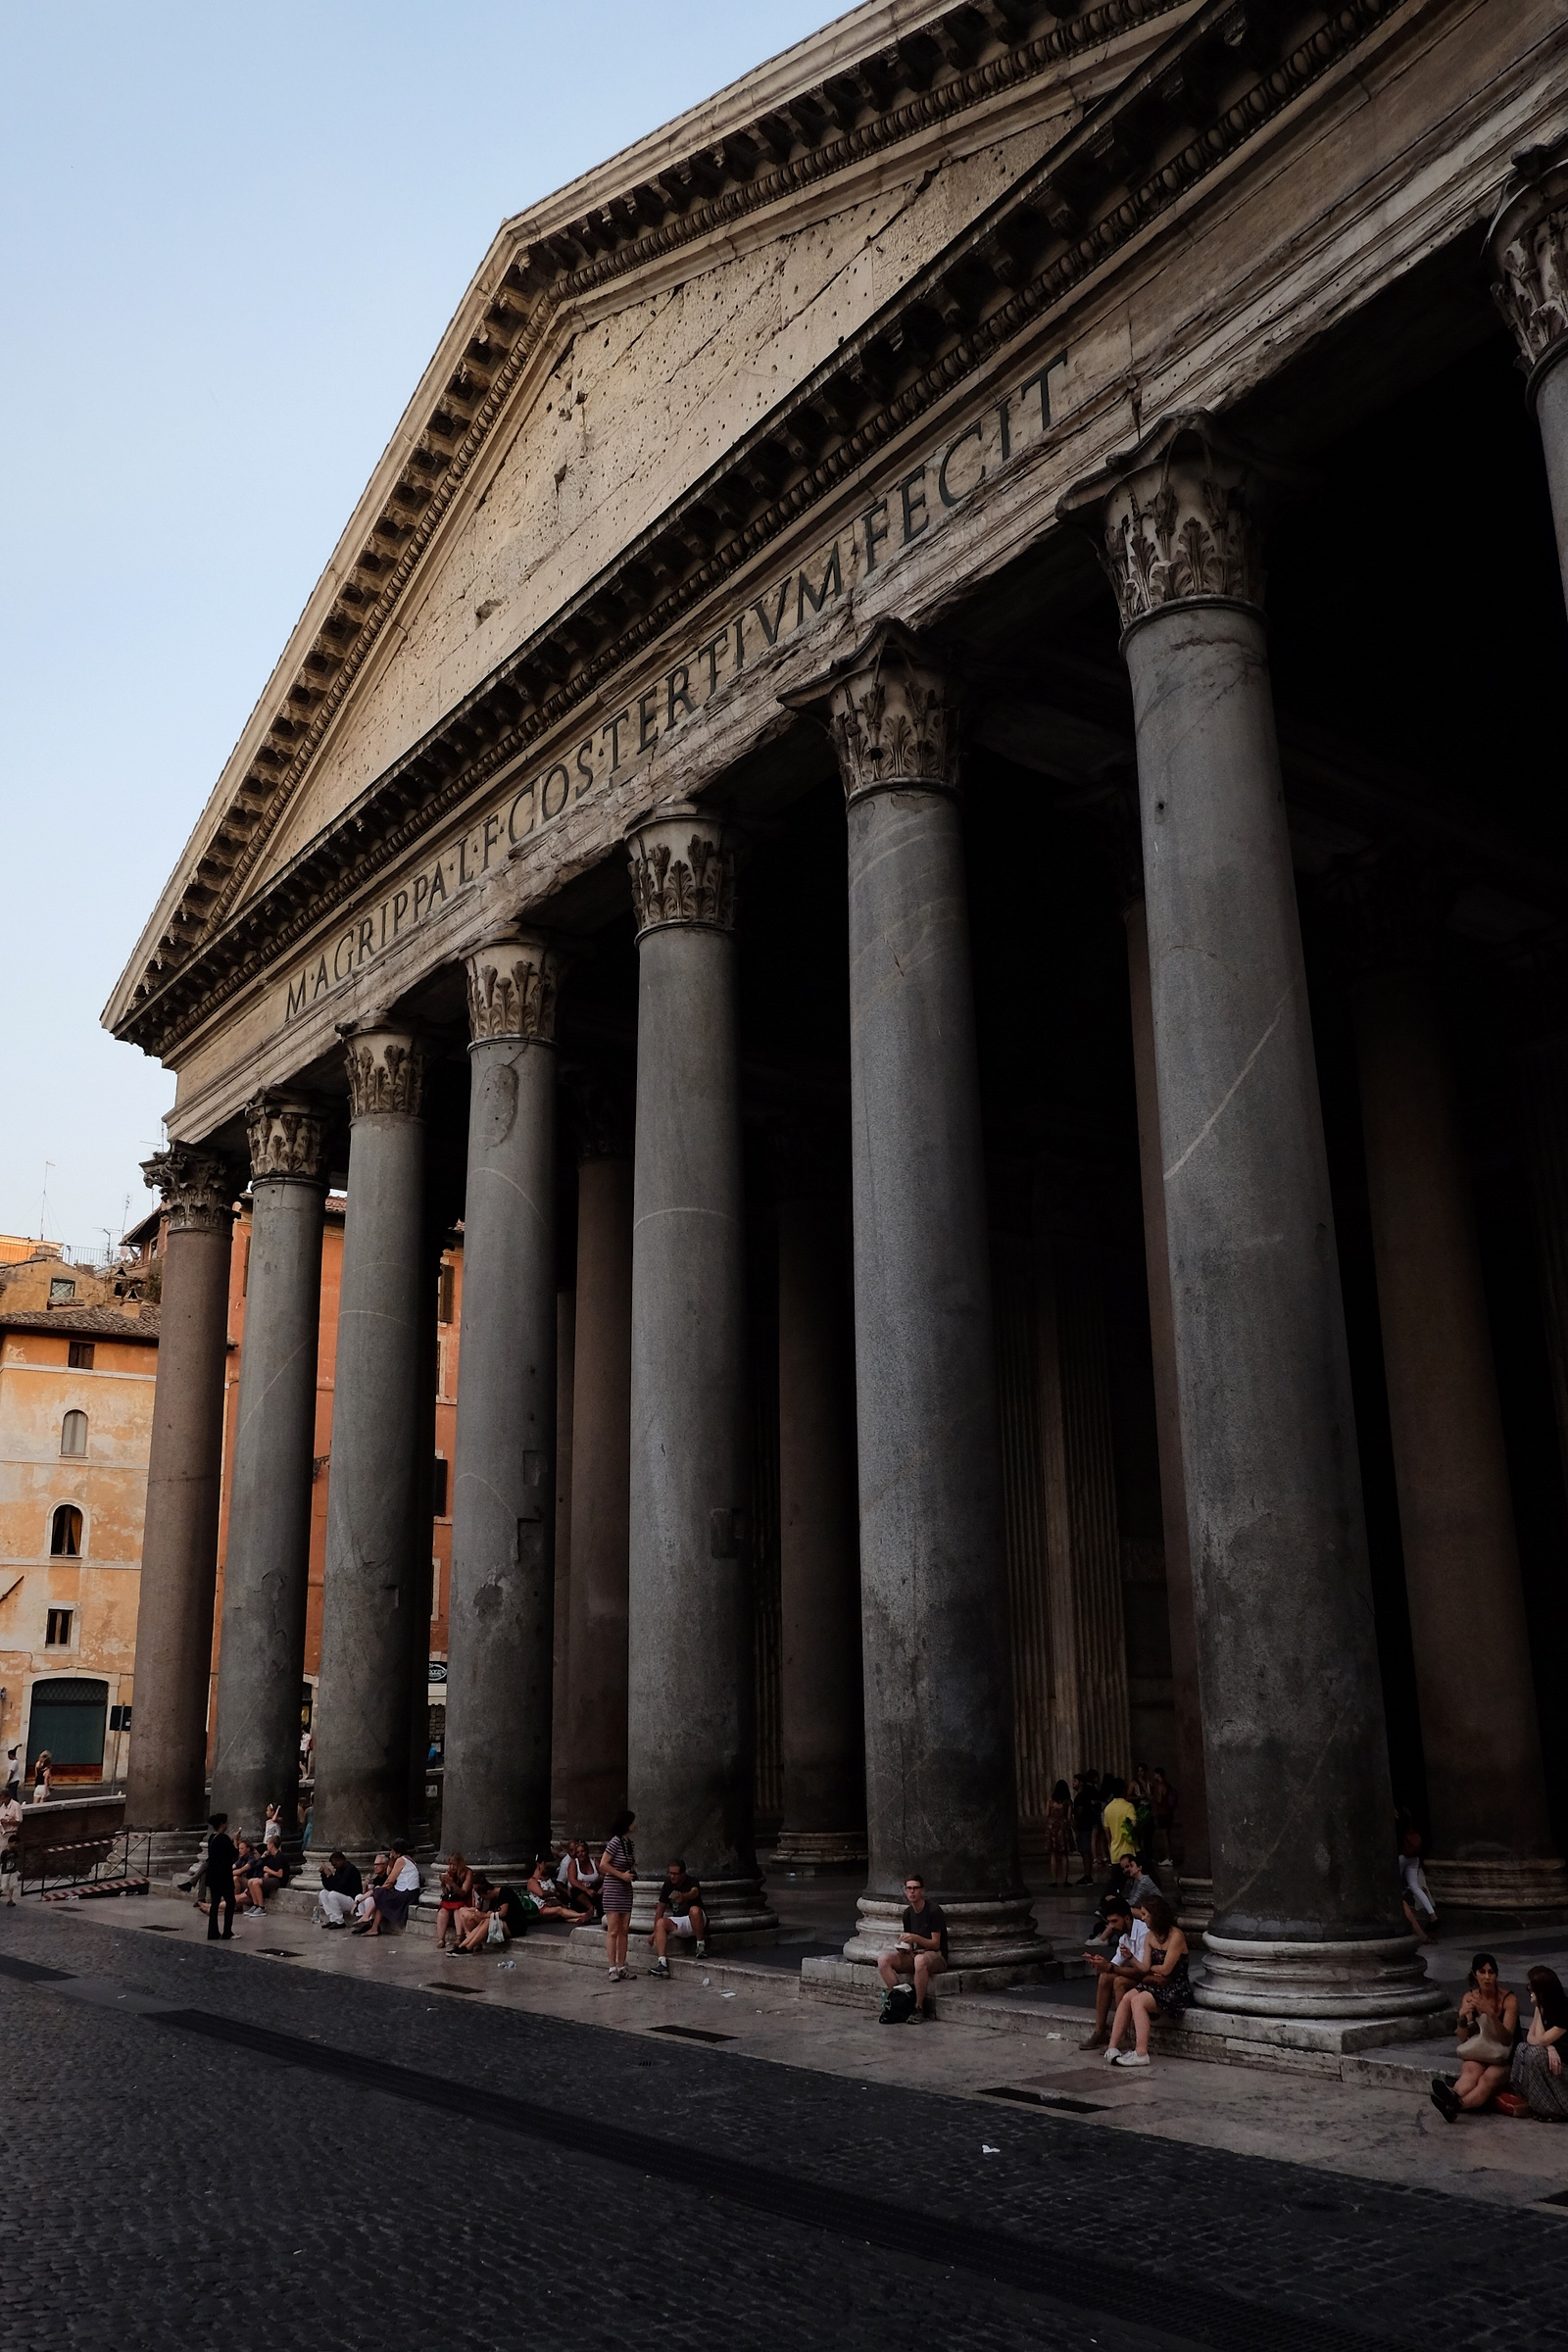 Walking past the Pantheon hunting for more gelato.